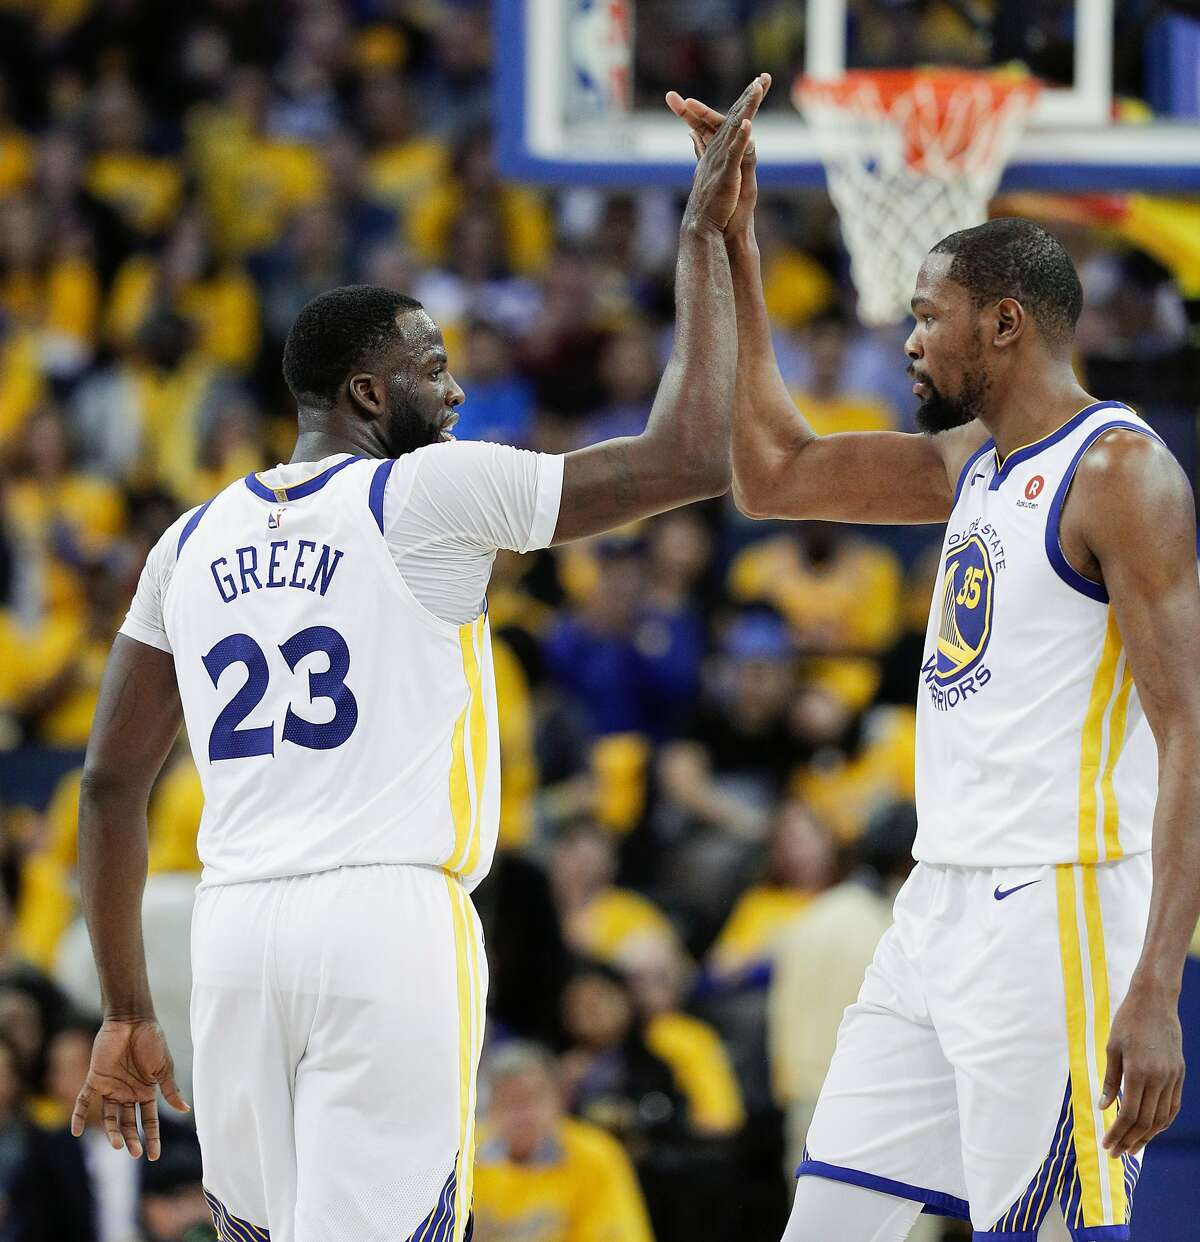 Golden State Warriors' Draymond Green and Kevin Durant high five in the third quarter during game 1 of round 2 of the Western Conference Finals between the Golden State Warriors and the New Orleans Pelicans at Oracle Arena on Saturday, April 28, 2018 in Oakland, Calif.